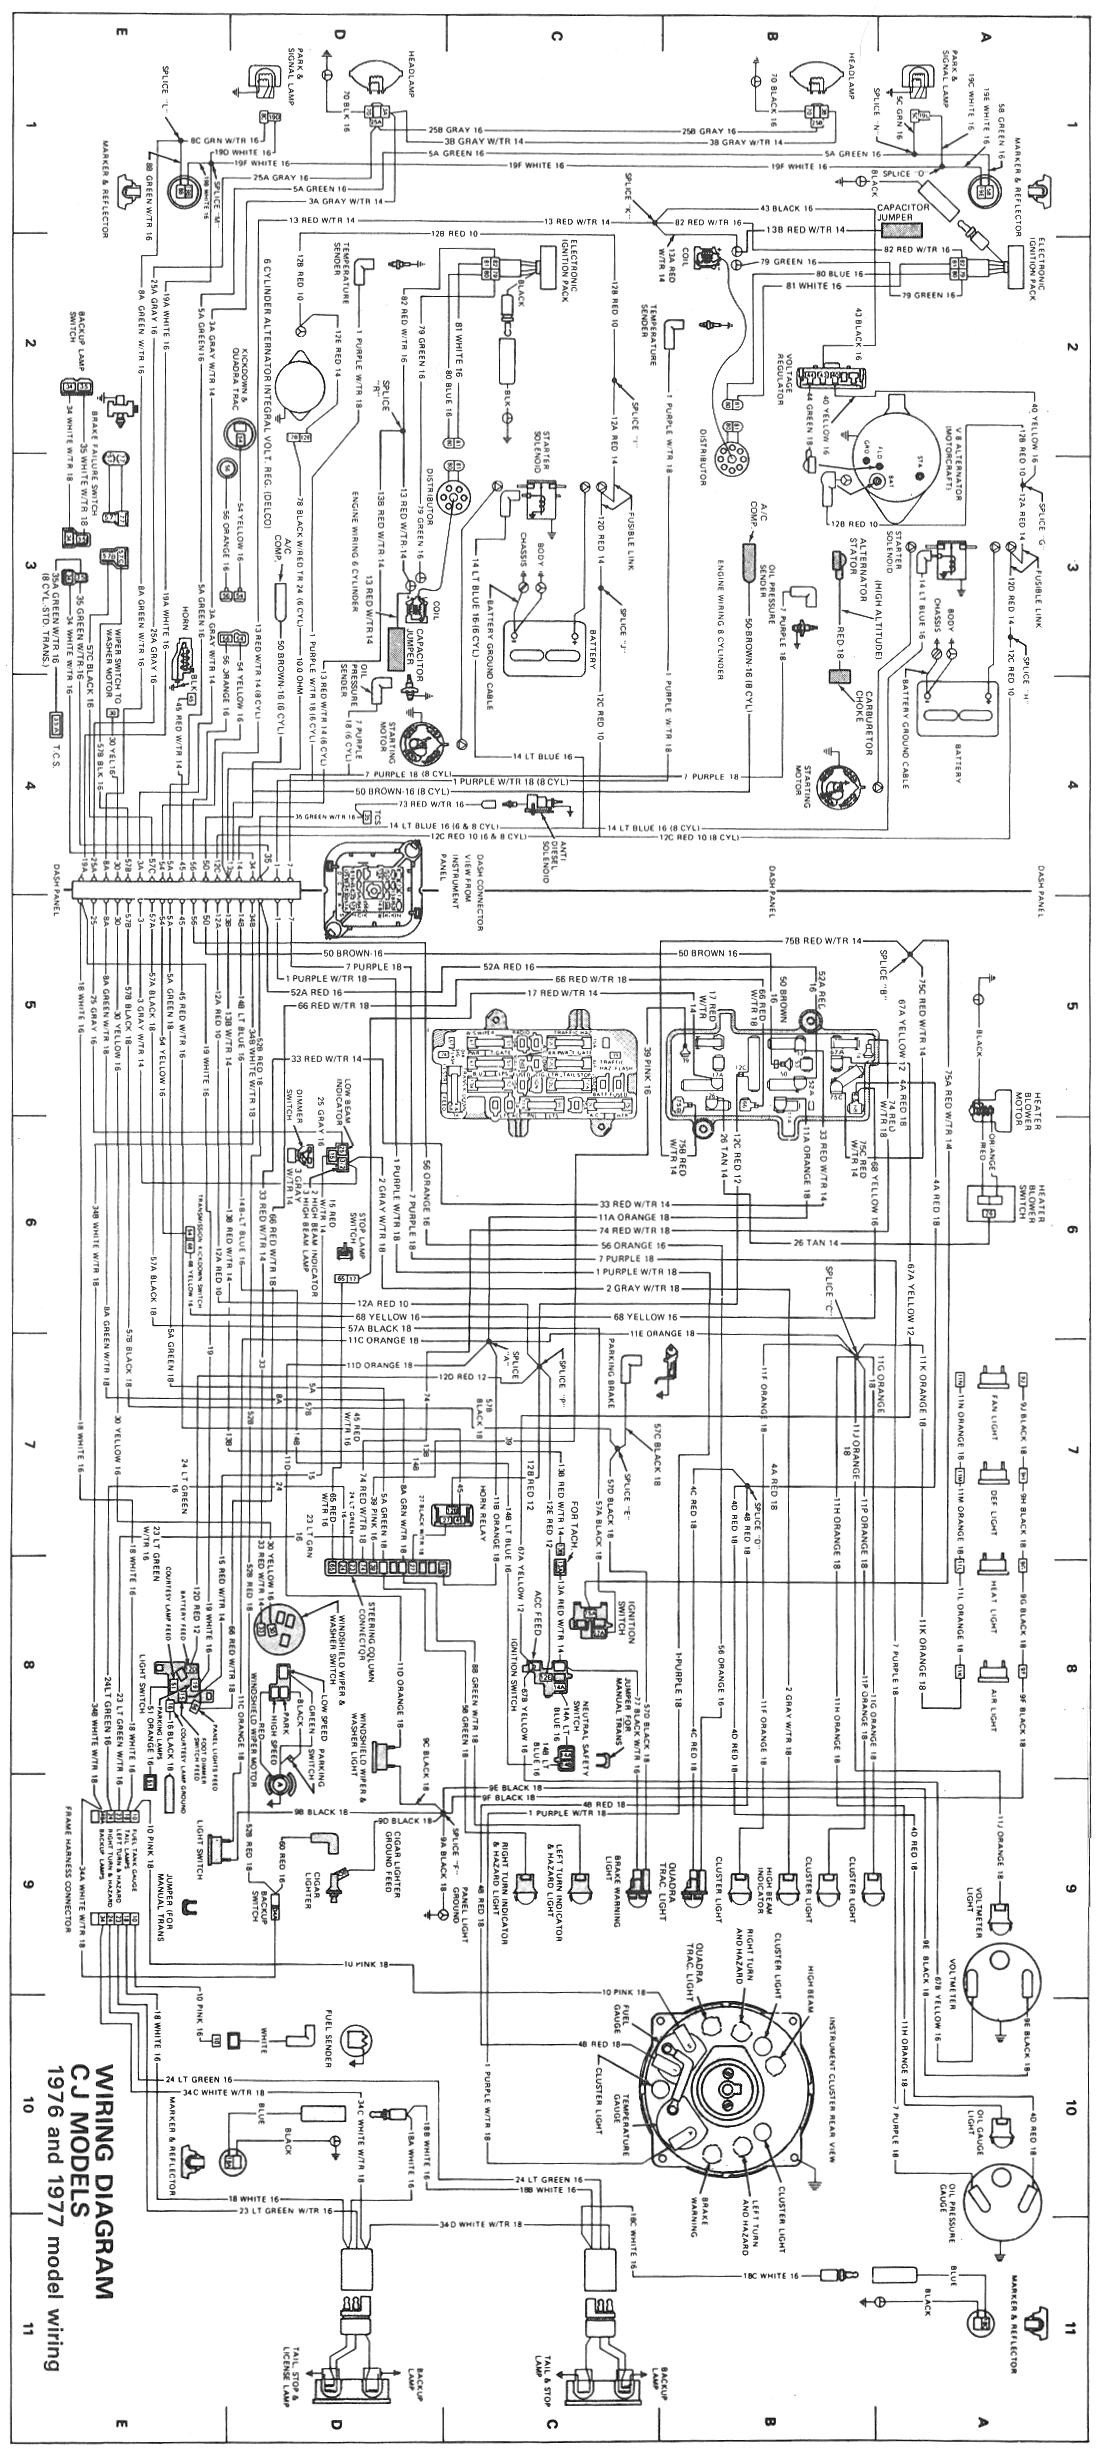 jeep cj starter solenoid wiring diagram further jeep cj7 body parts rh hashtravel co Jeep CJ5 Dash Wiring Diagram CJ7 Engine Wiring-Diagram